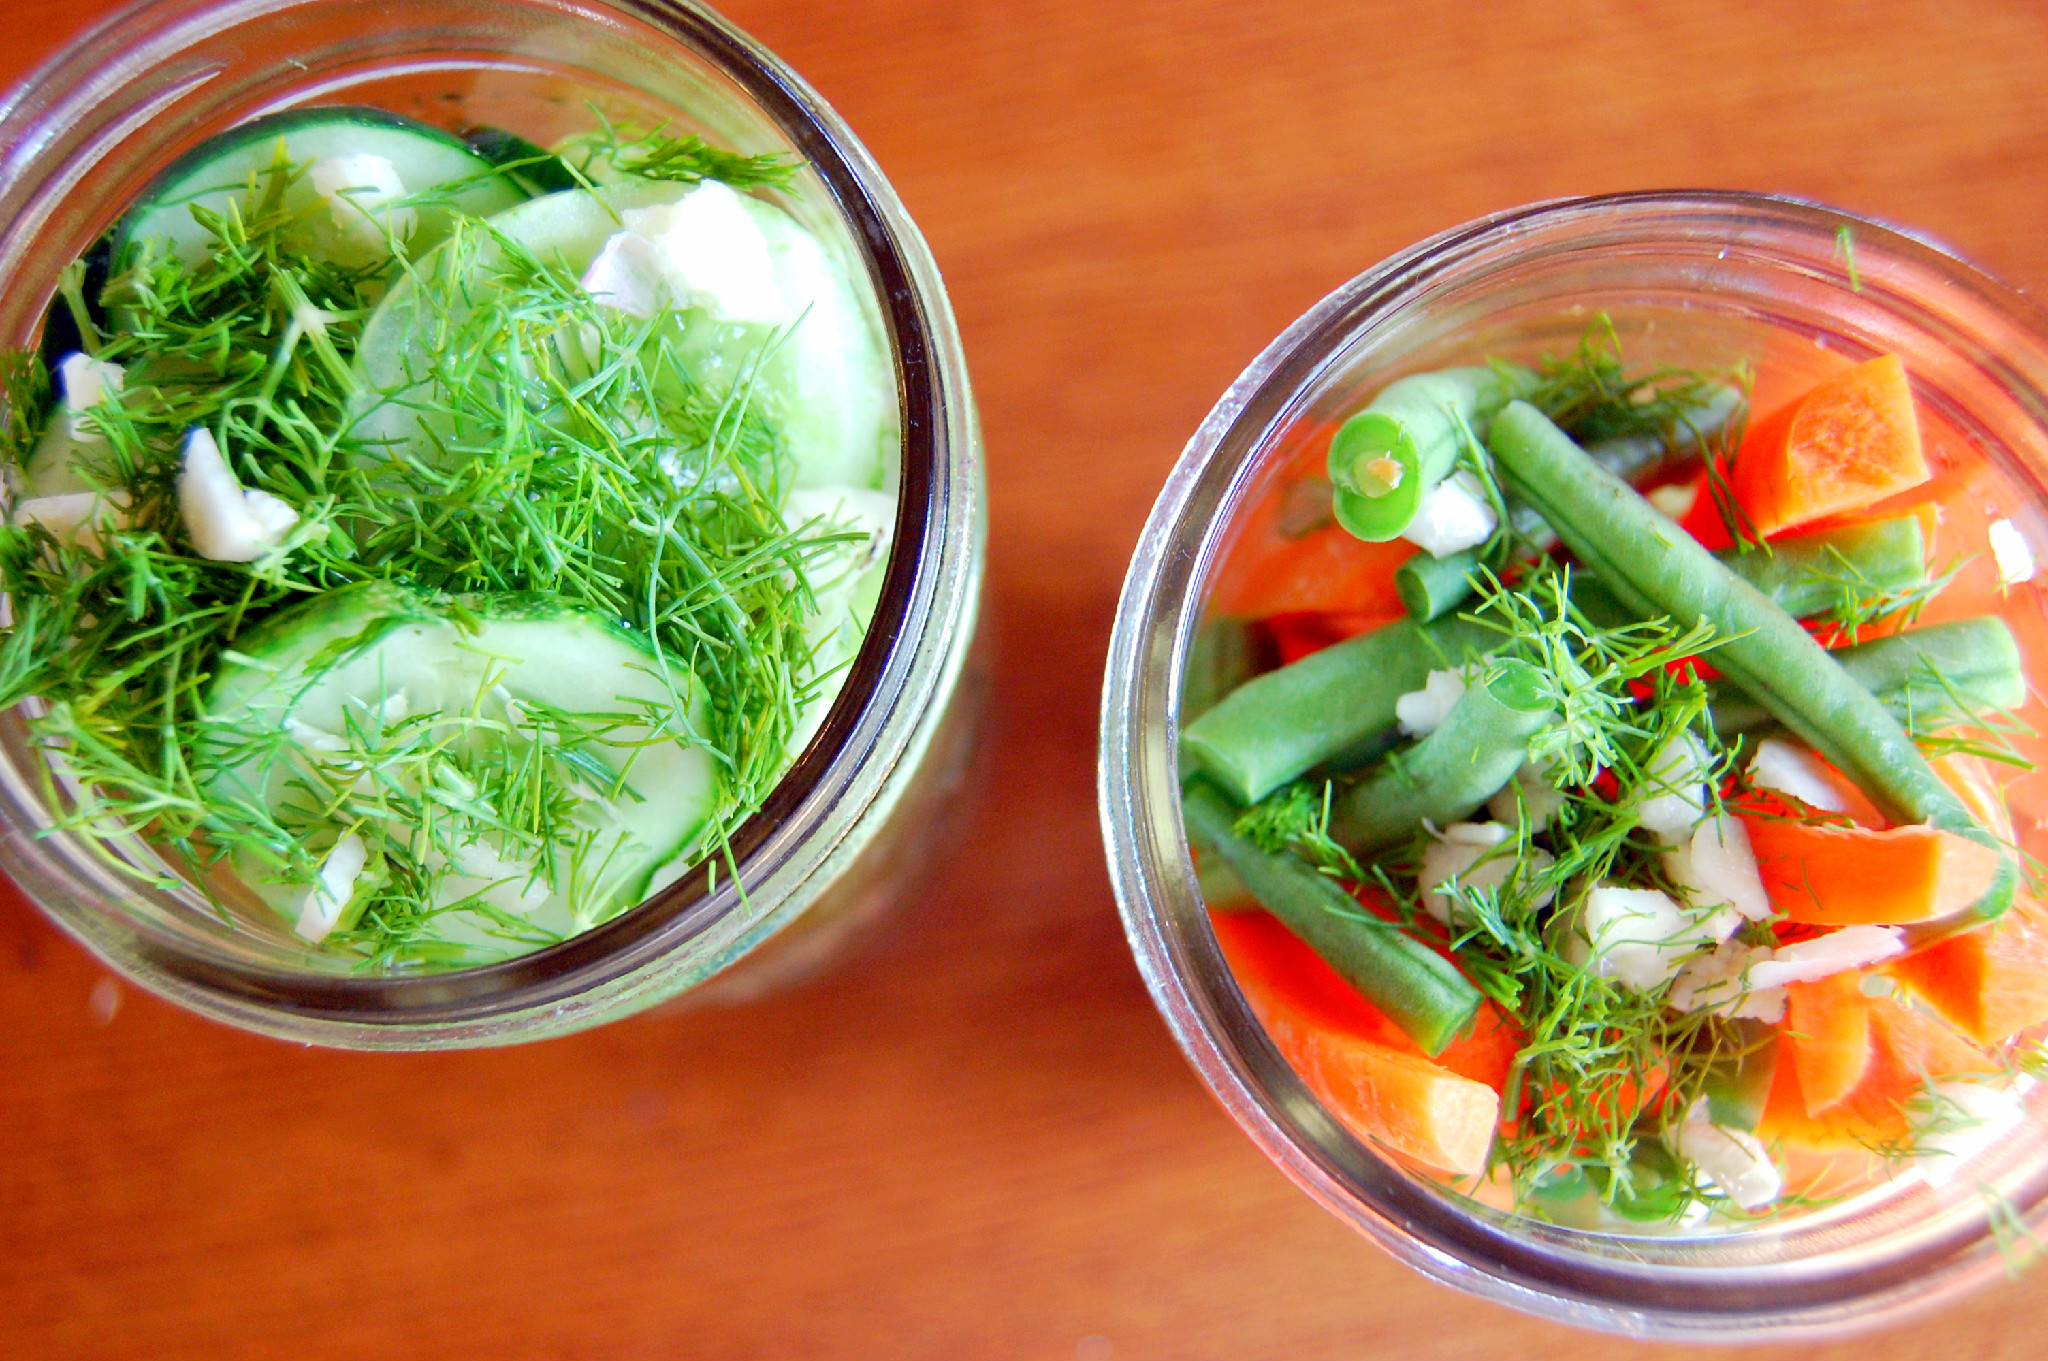 Easy Refrigerator Dill Pickles and Pickled Vegetables